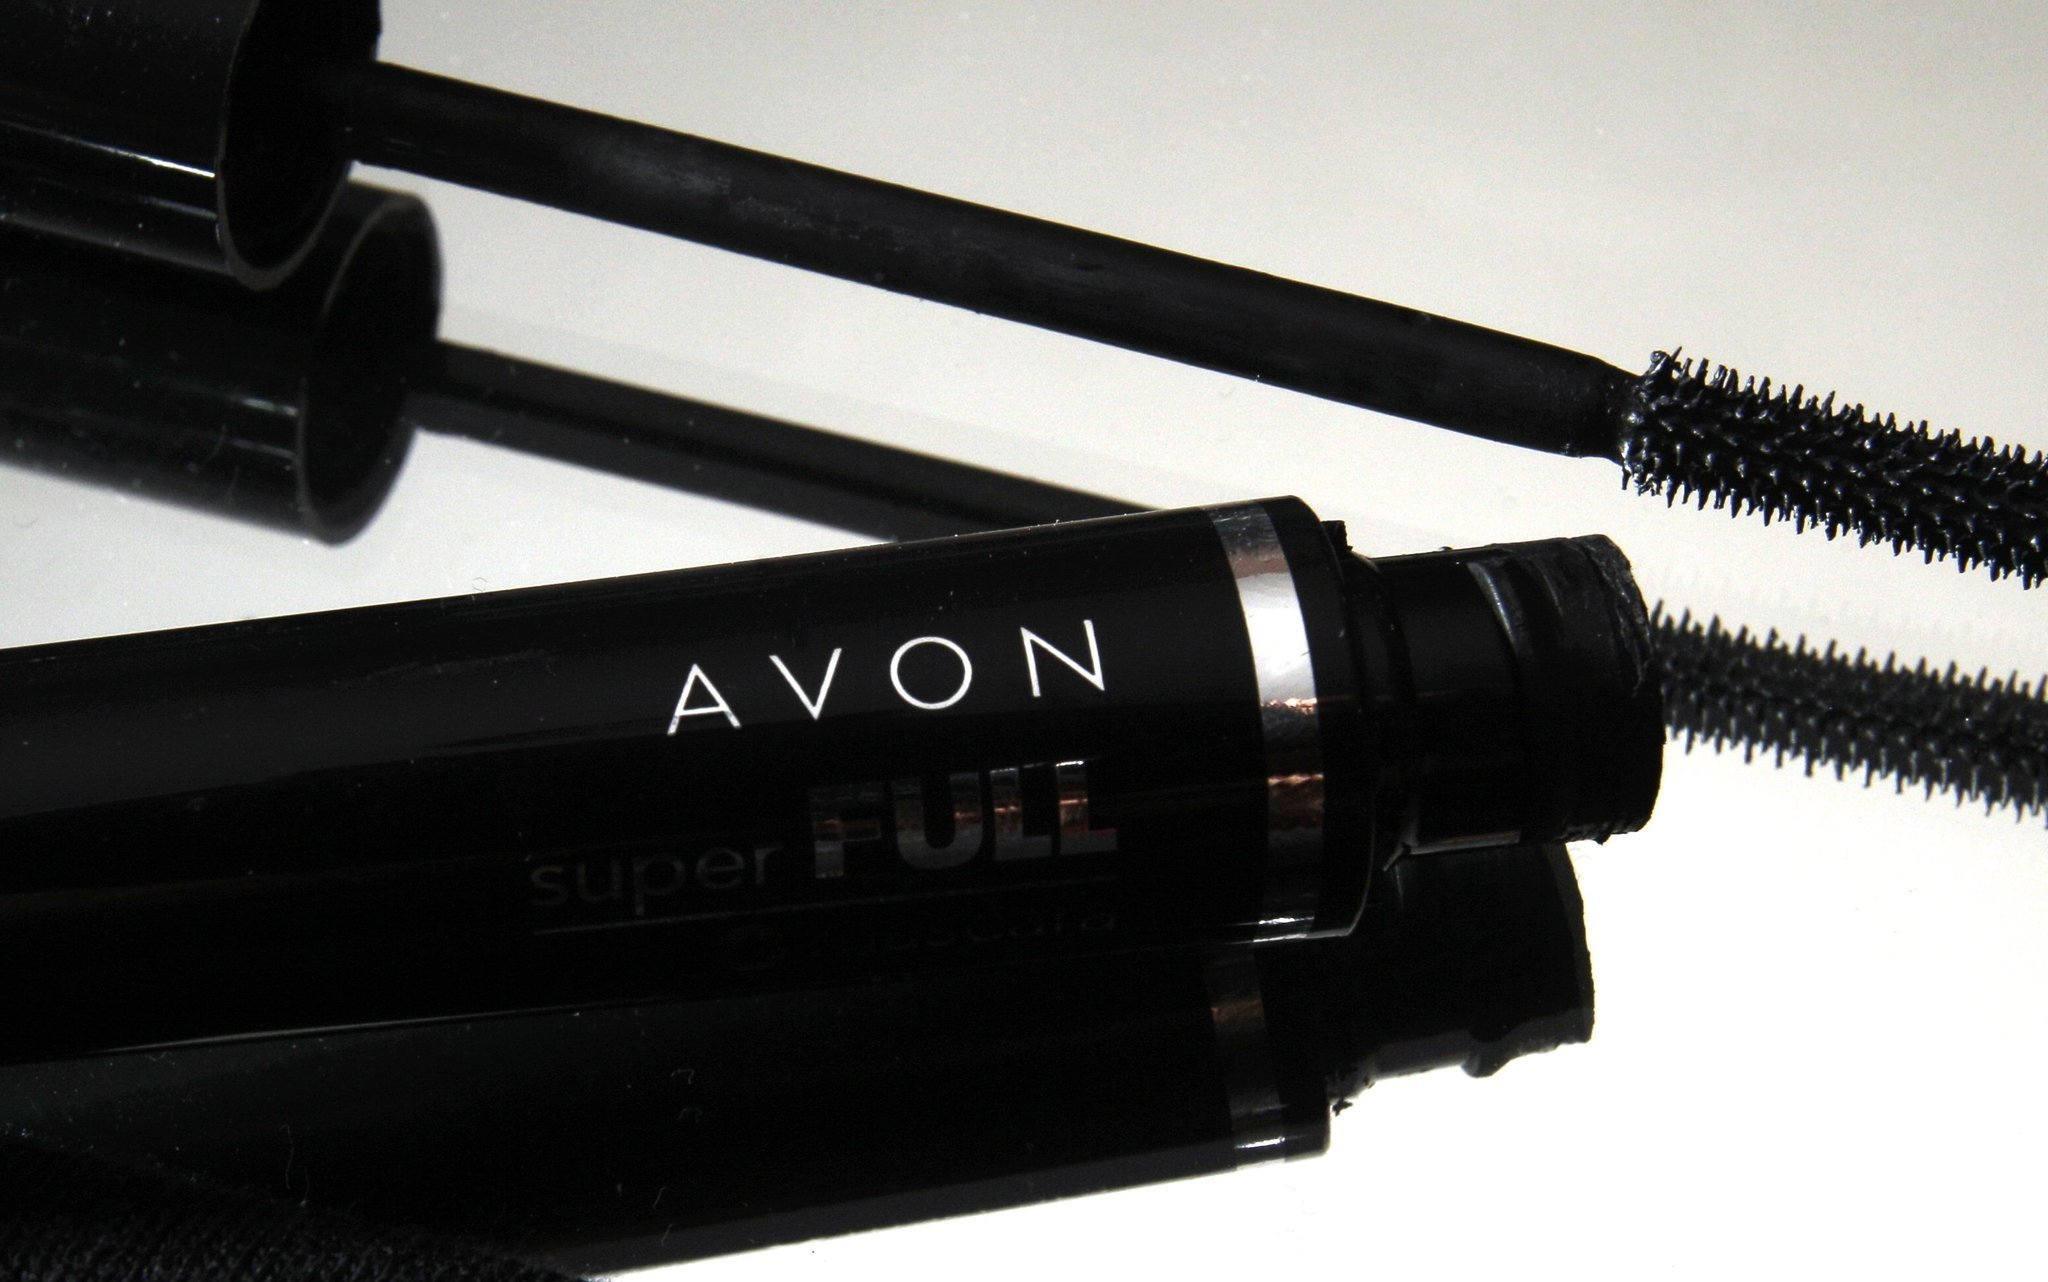 Cerberus taking a majority stake in Avon's North American unit